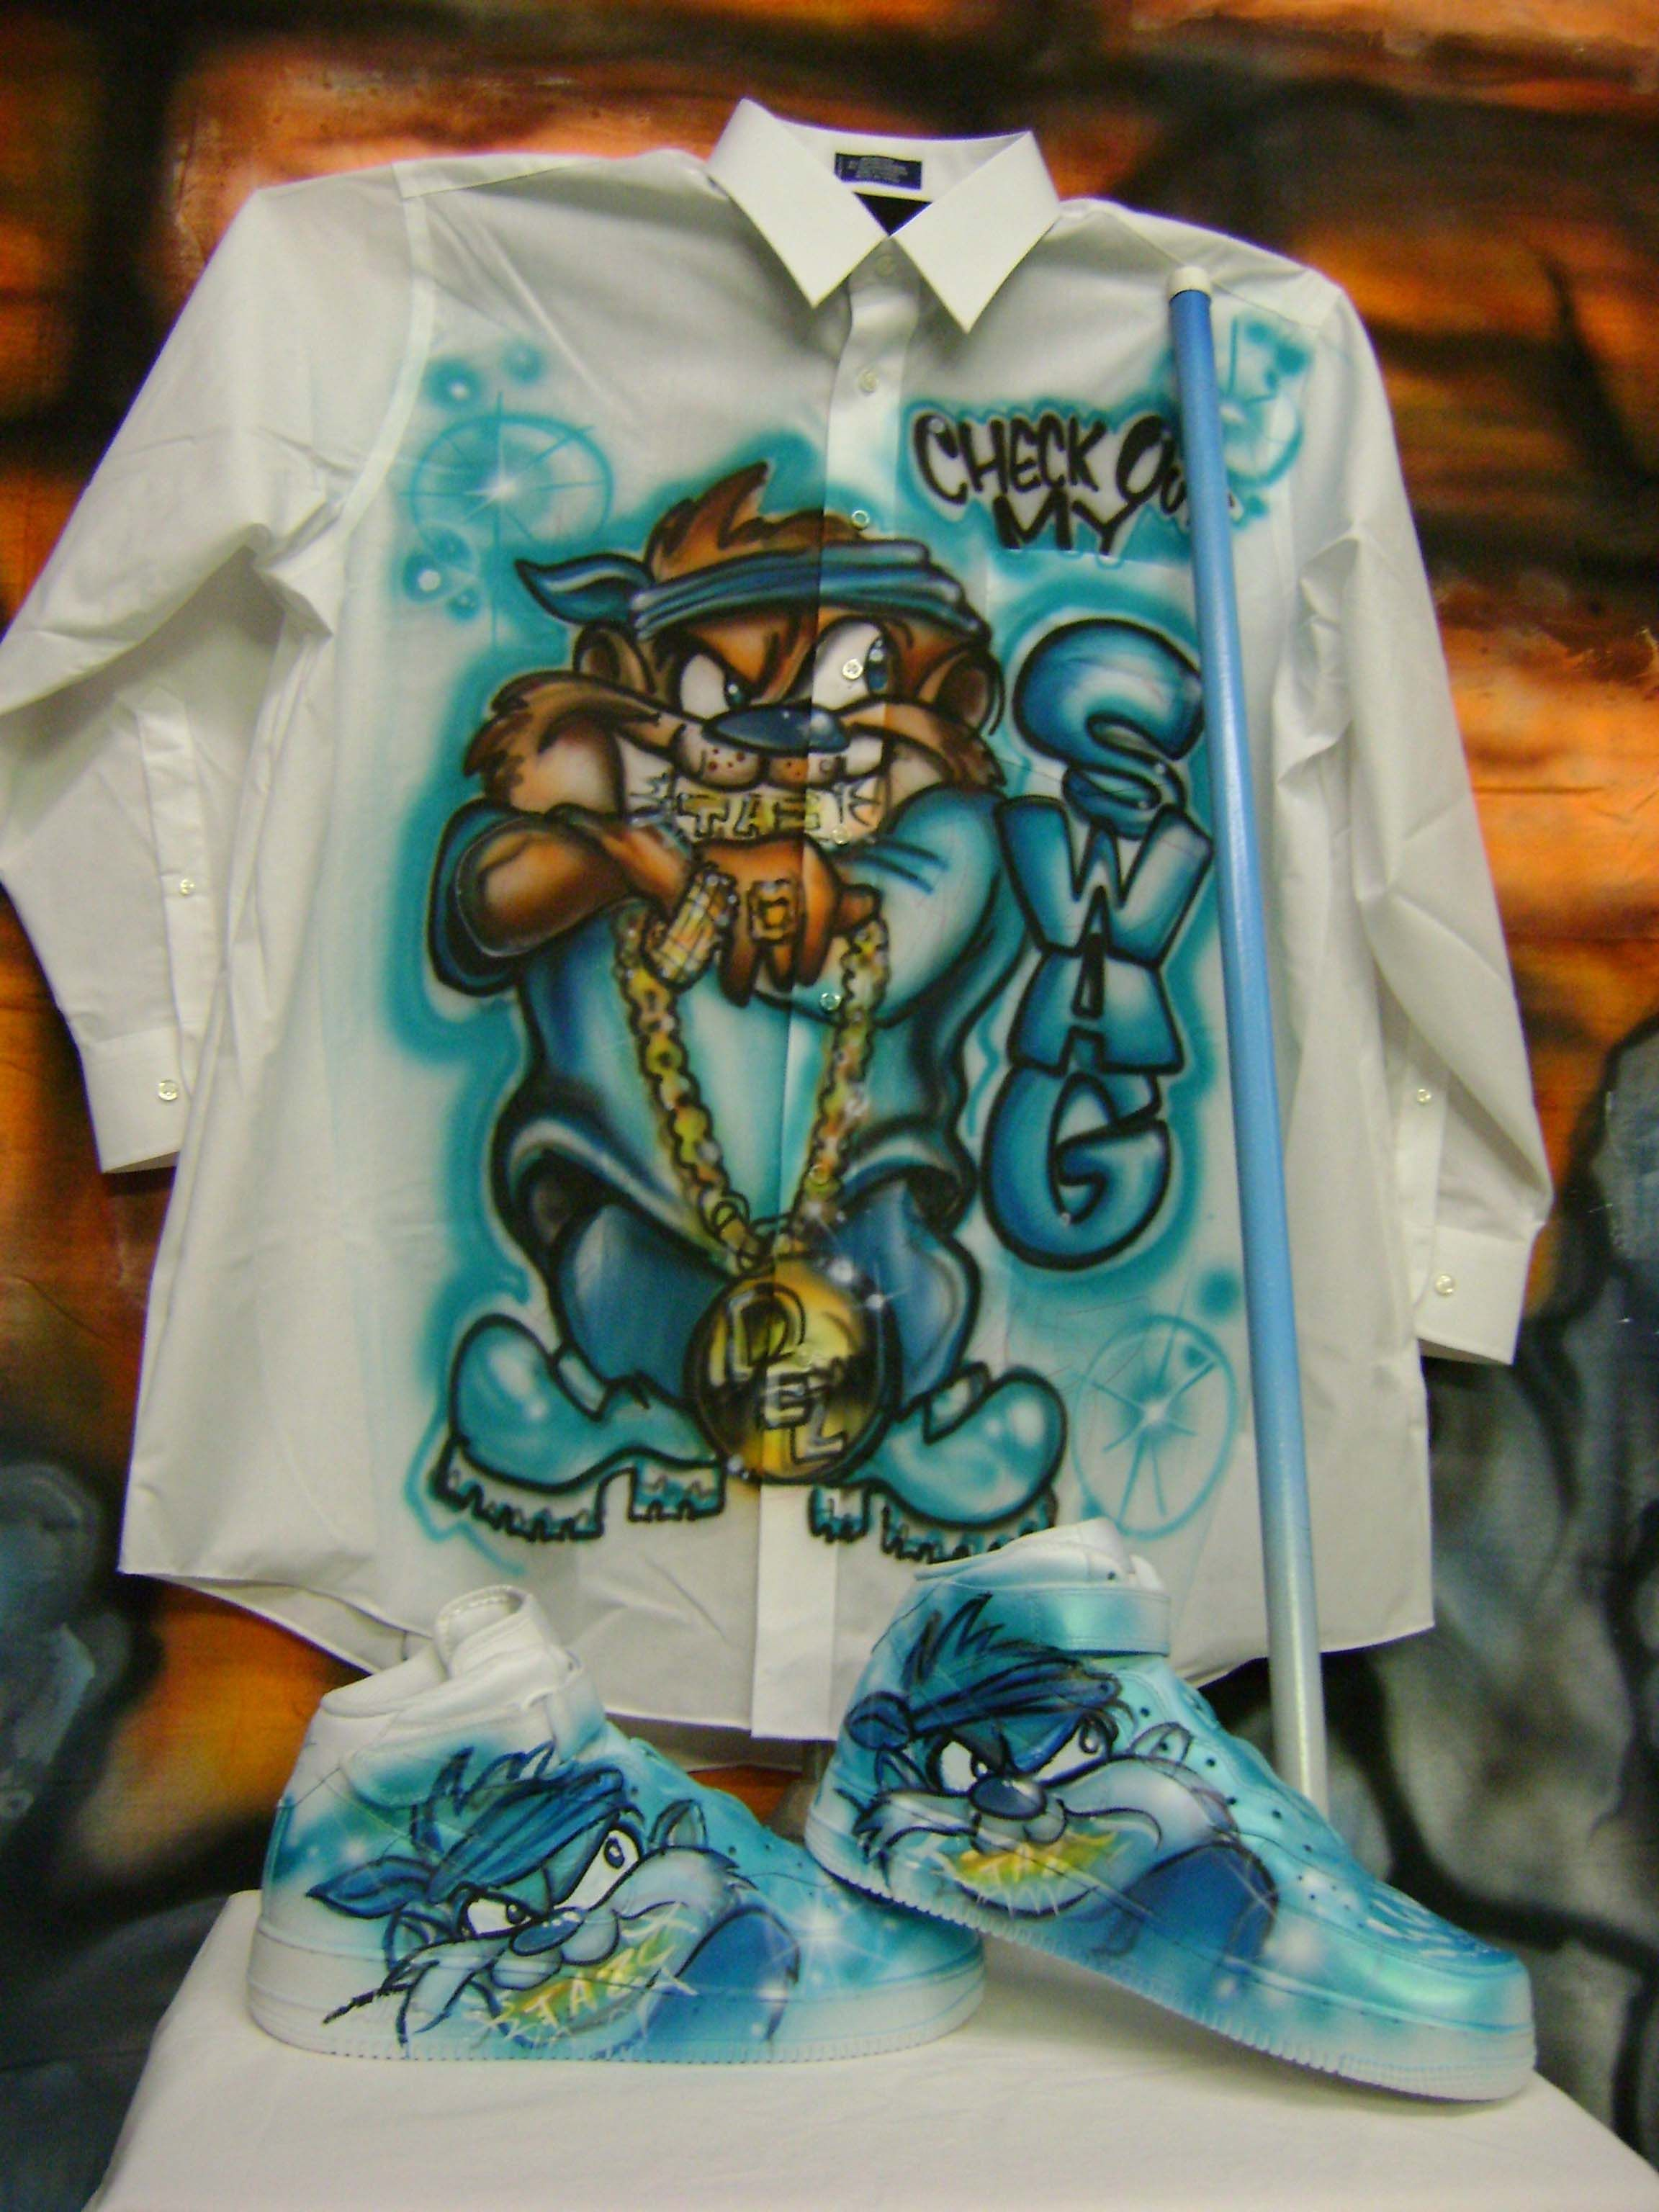 Airbrush Shirt Designs